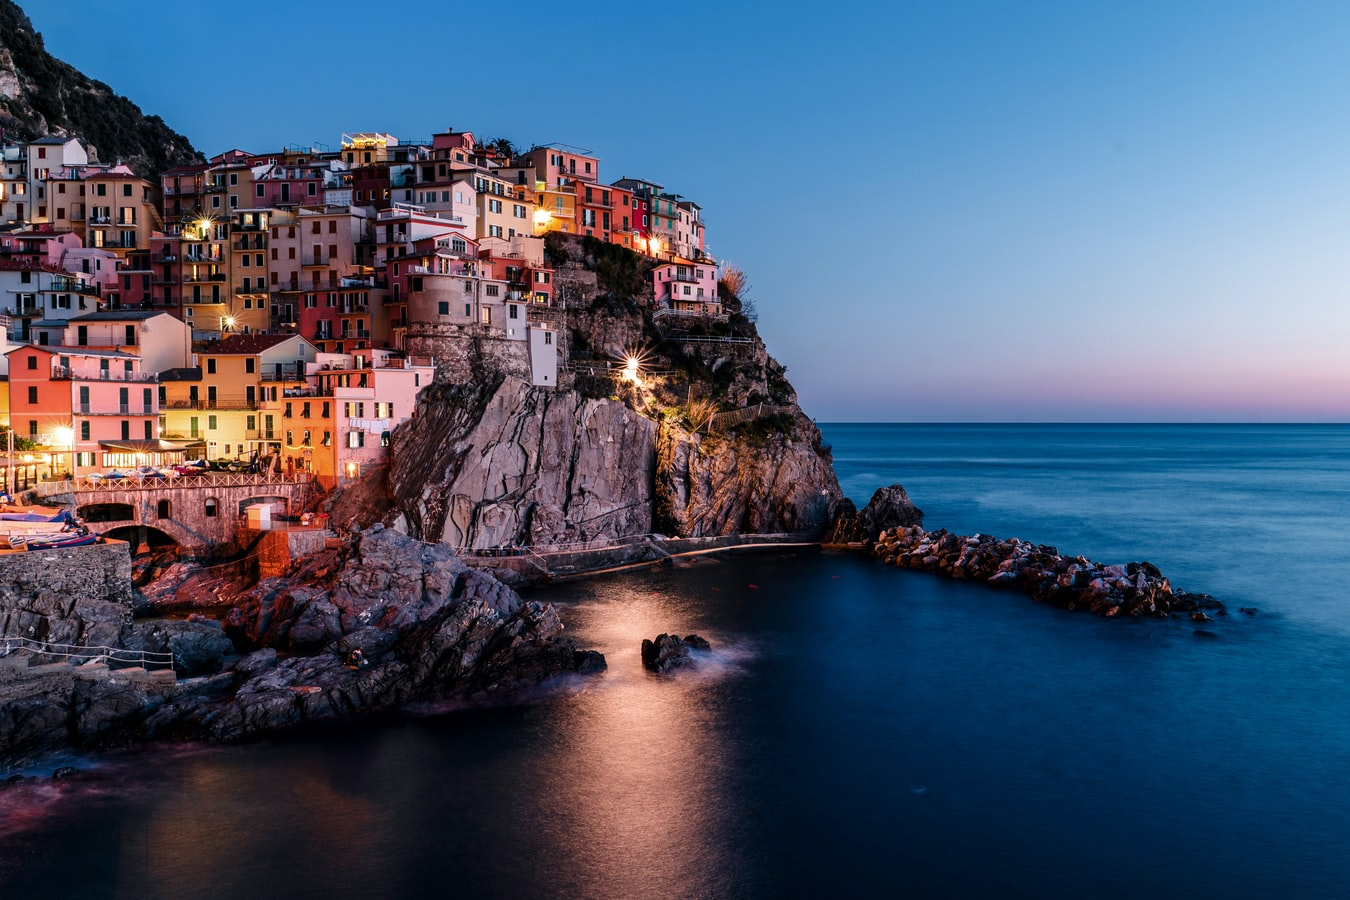 colorful homes dot the hillside in Cinque Terre, Italy